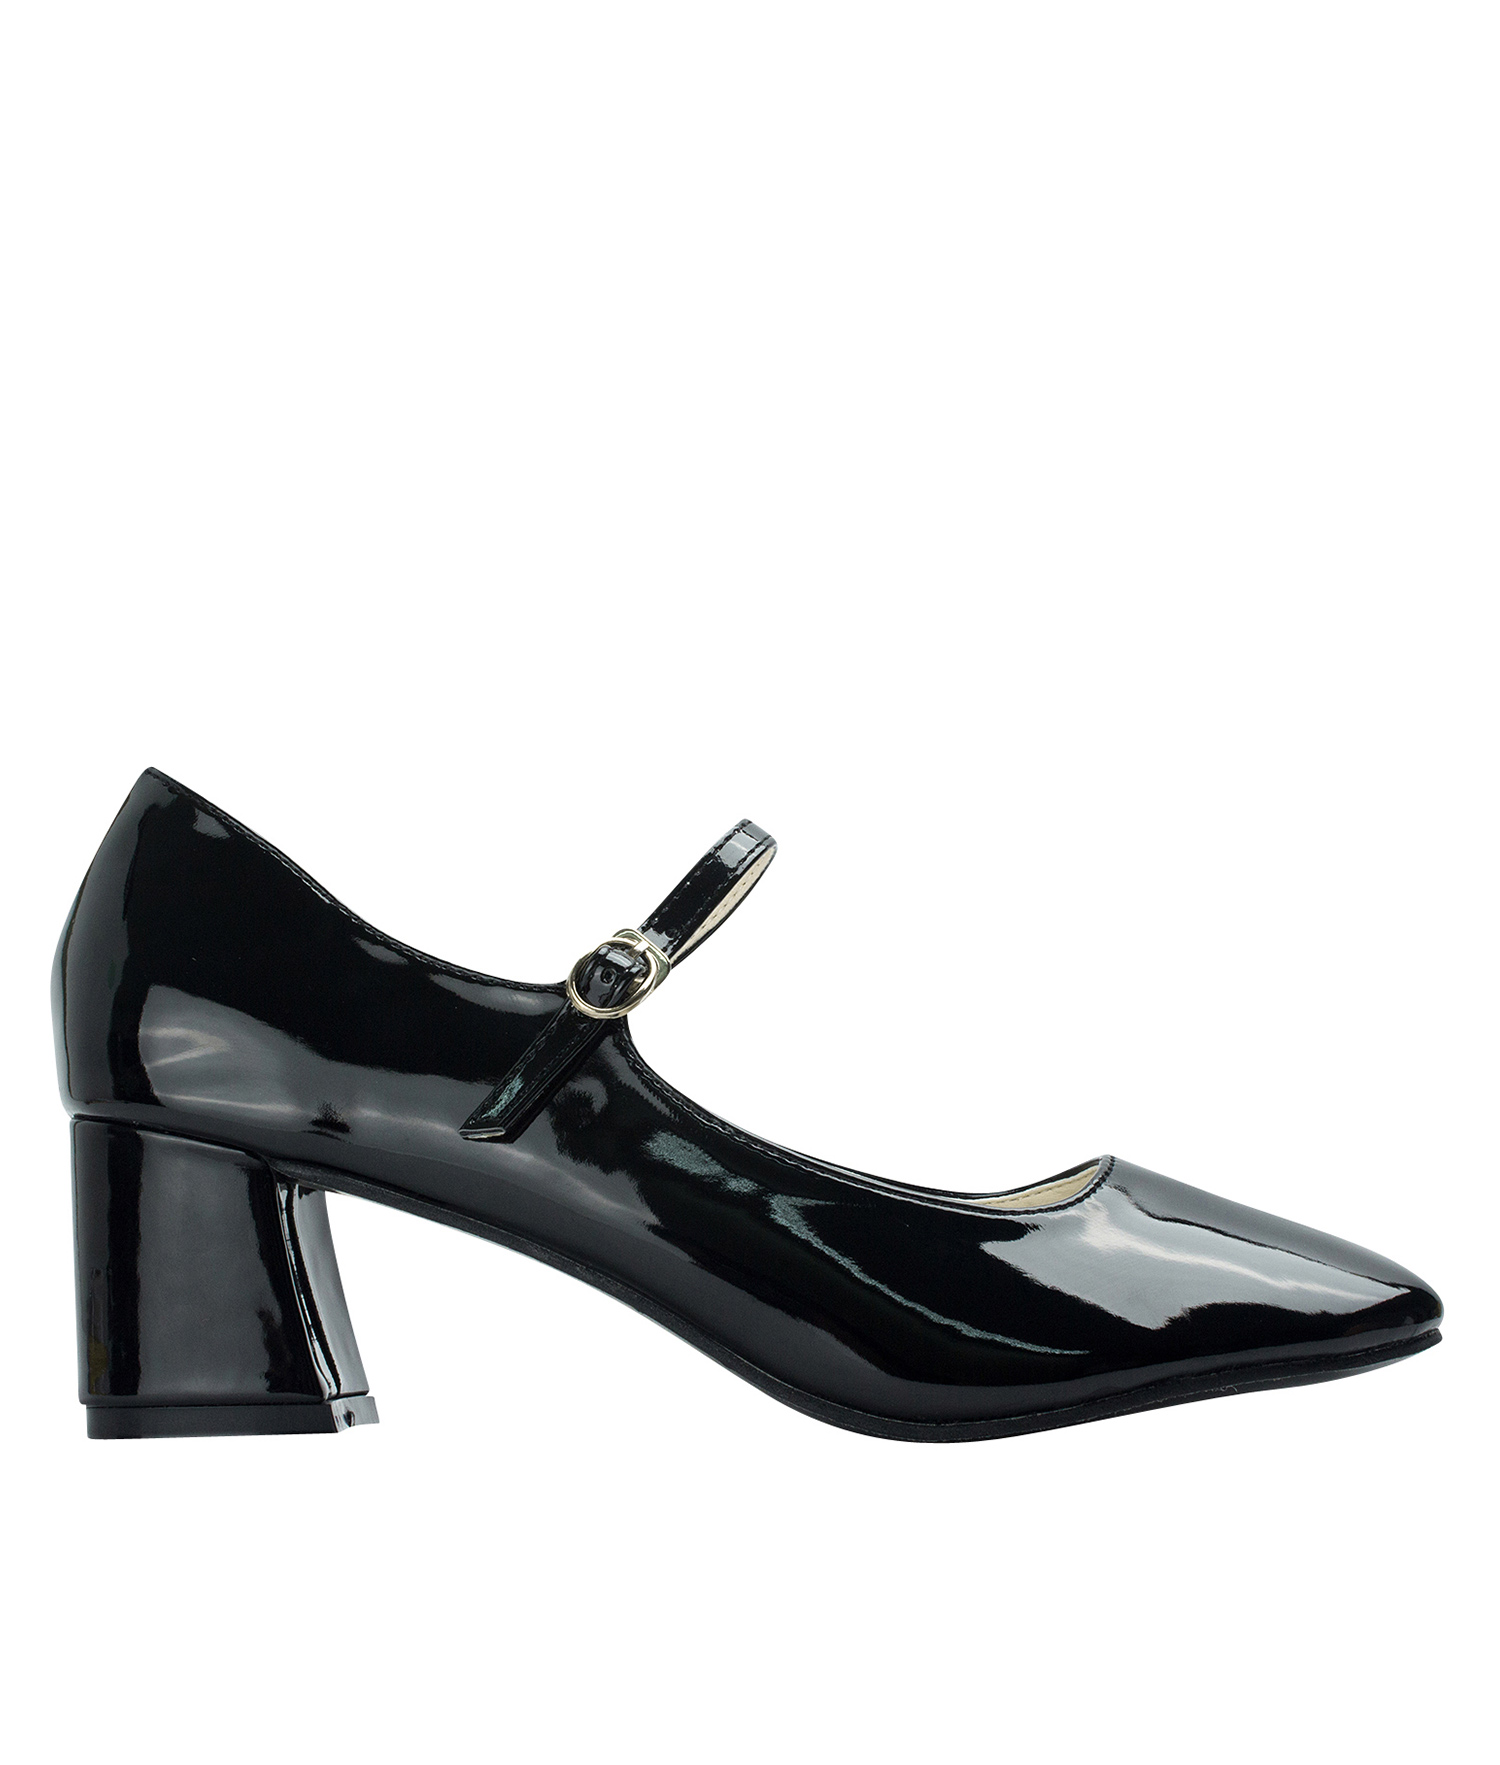 42c40056955 Faux Patent Mary Jane Chunky Heel Pumps